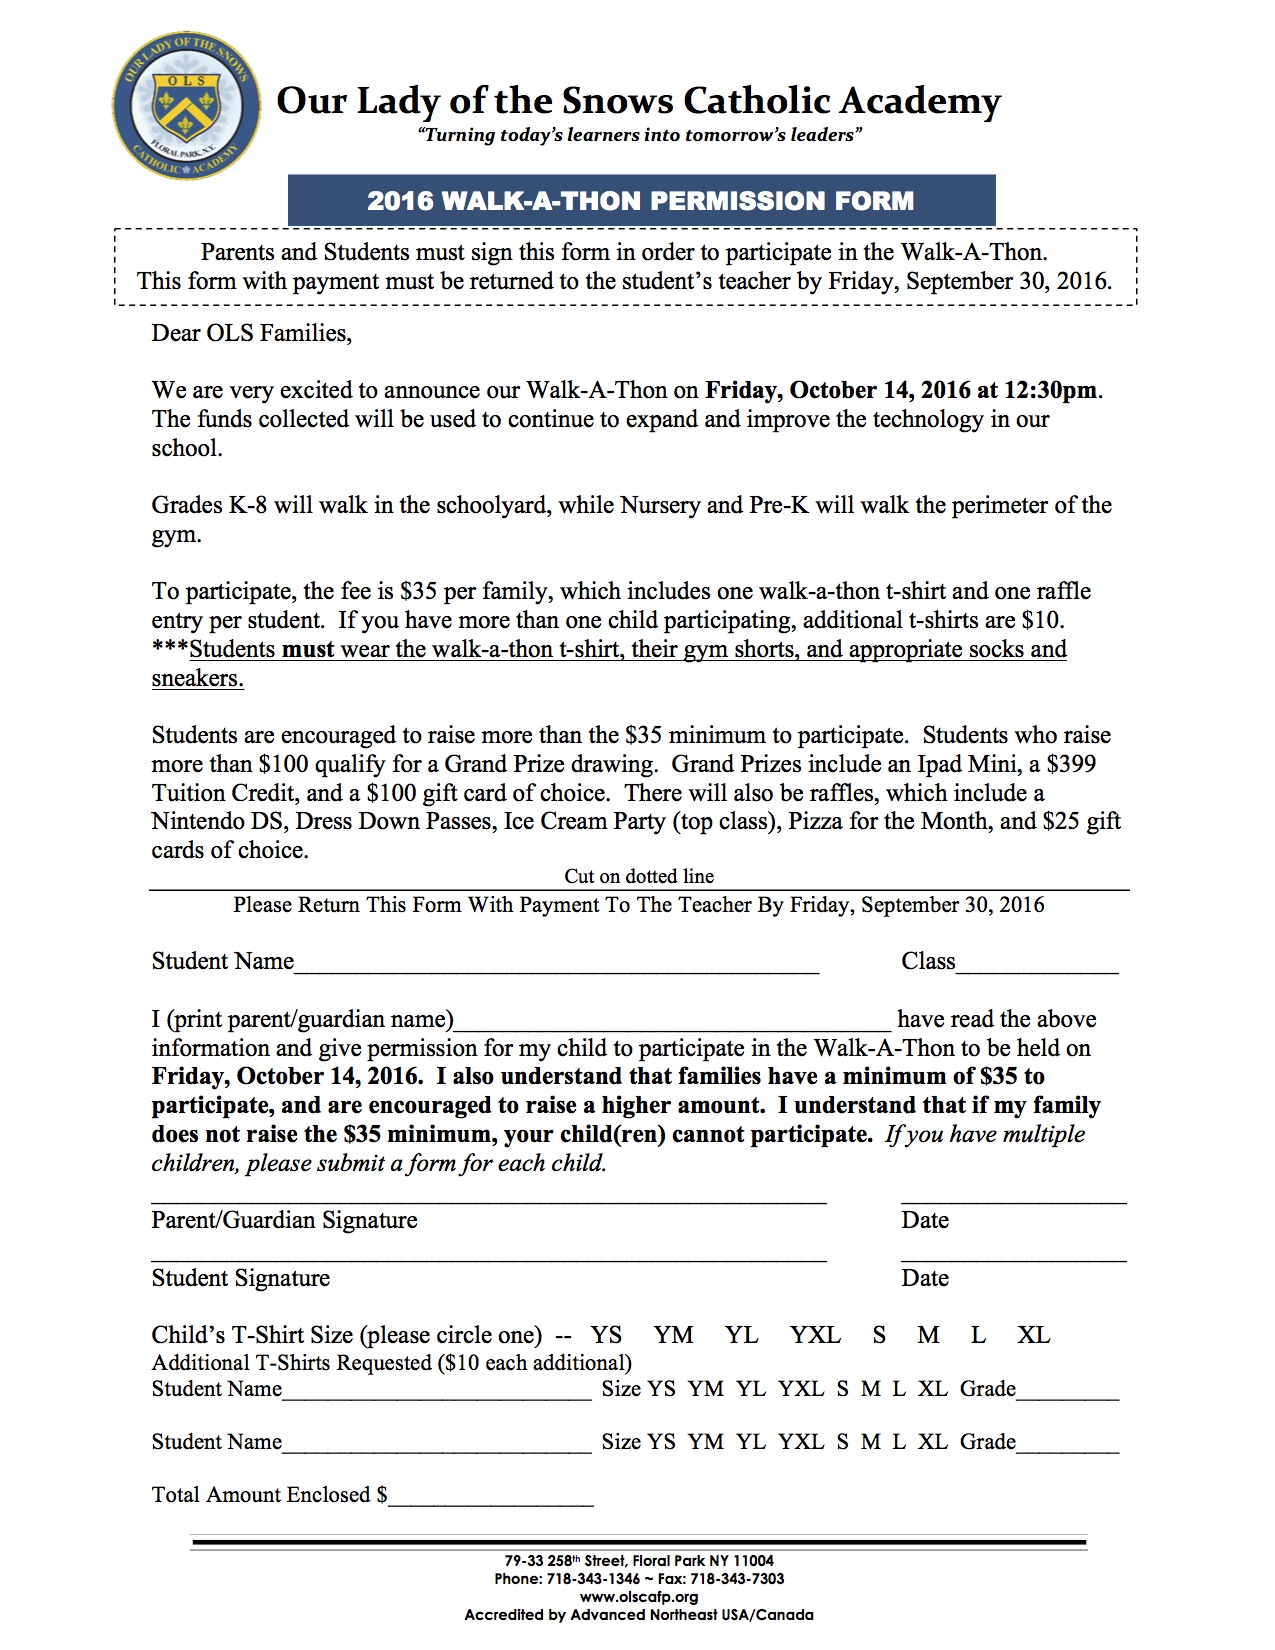 Walk-A-Thon Permission Form - Our Lady of the Snows Catholic Academy